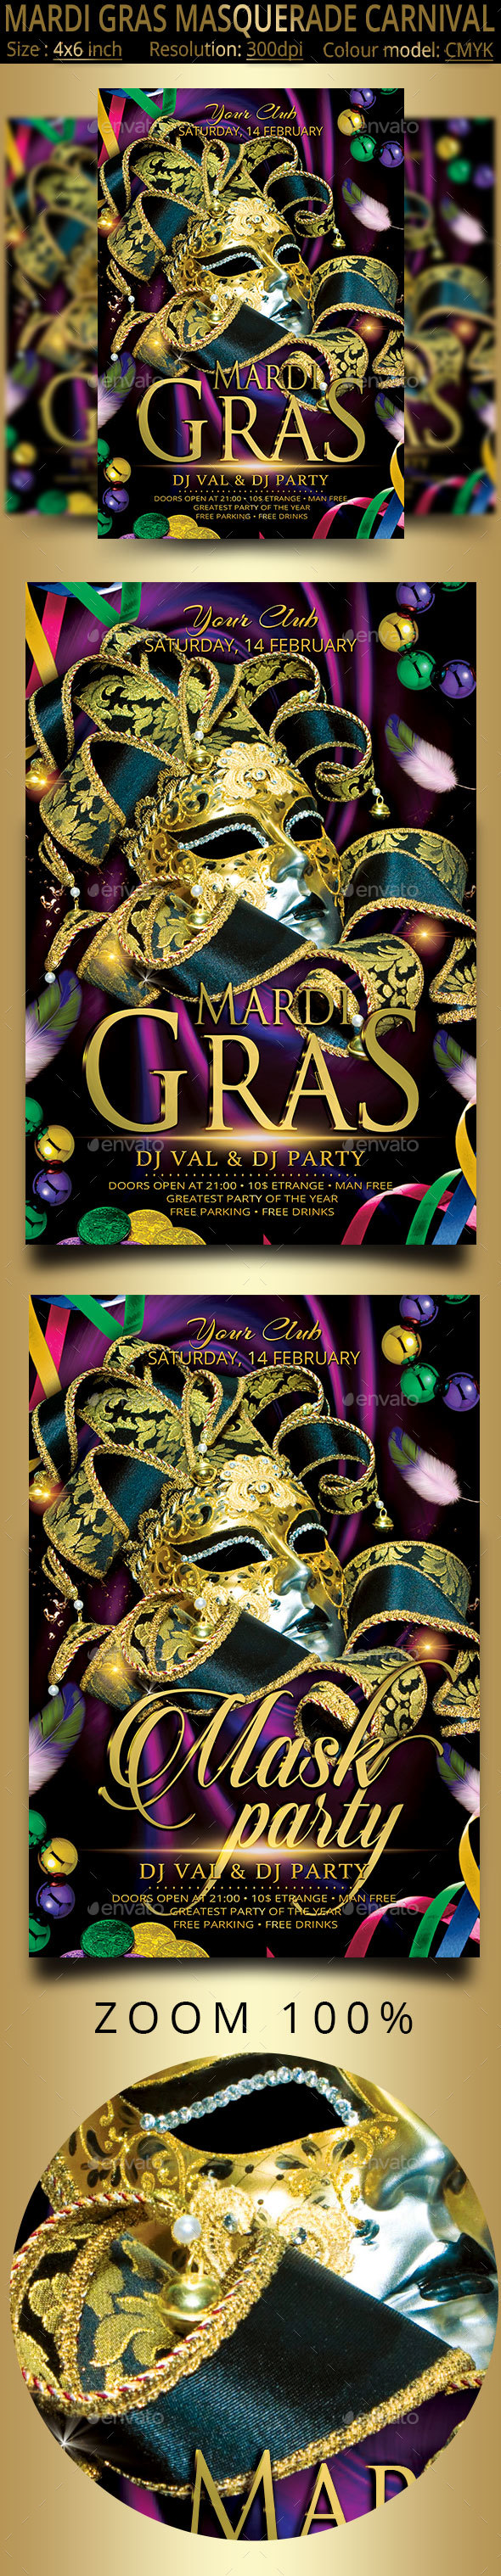 Mardi Gras Masquerade Carnival Party Flyer - Clubs & Parties Events